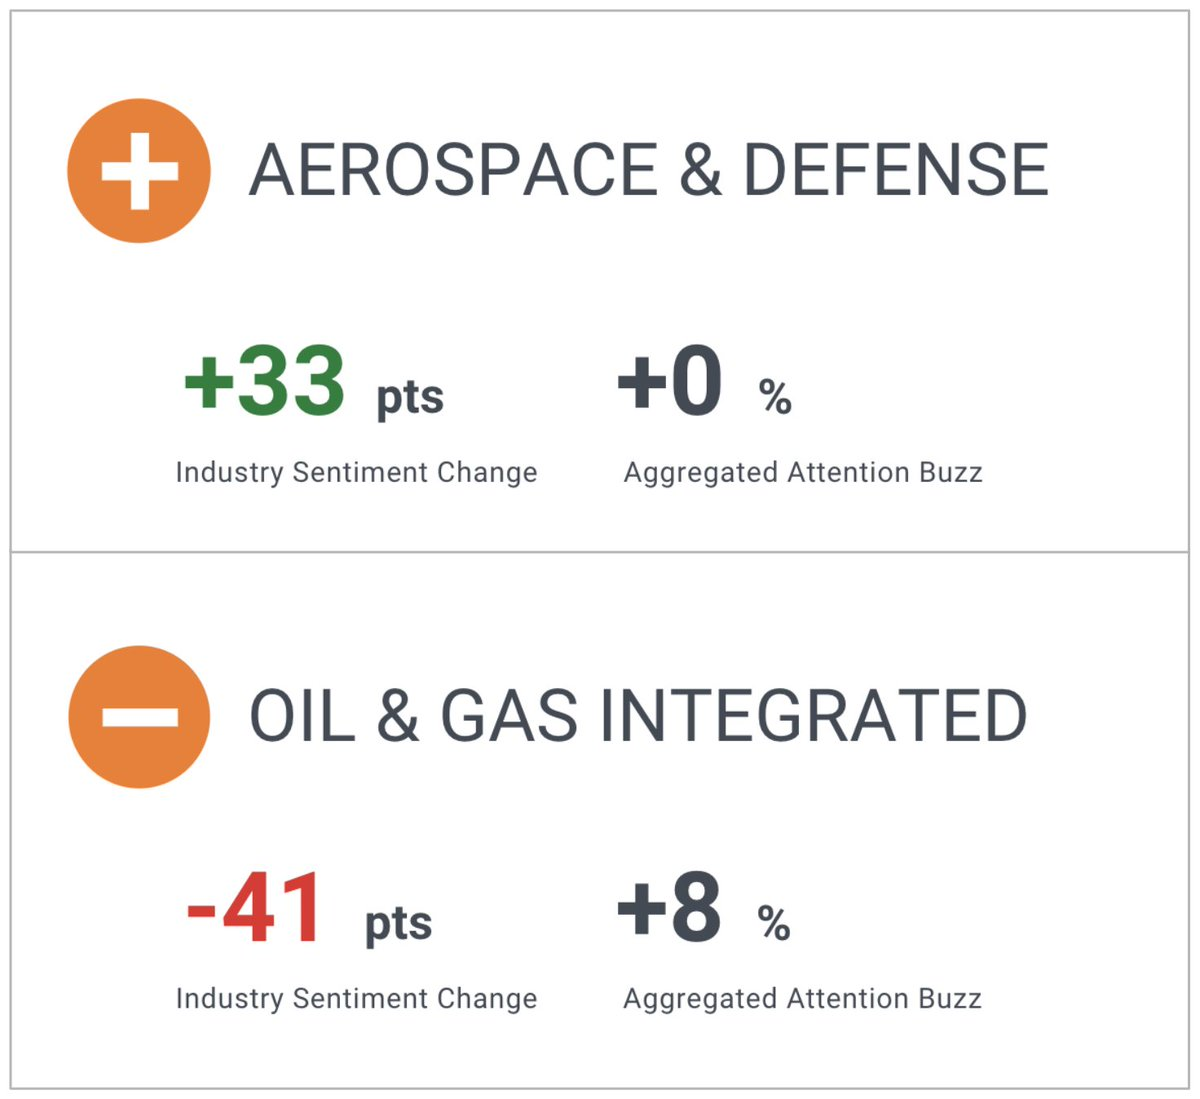 Have a look at our market movers: #Aerospace & Defense ⬆, #Oil & Gas Integrated ⬇️. Check out the companies you should keep an eye on: https://t.co/d65Mzn7XKJ https://t.co/l0Nvy4gxsC